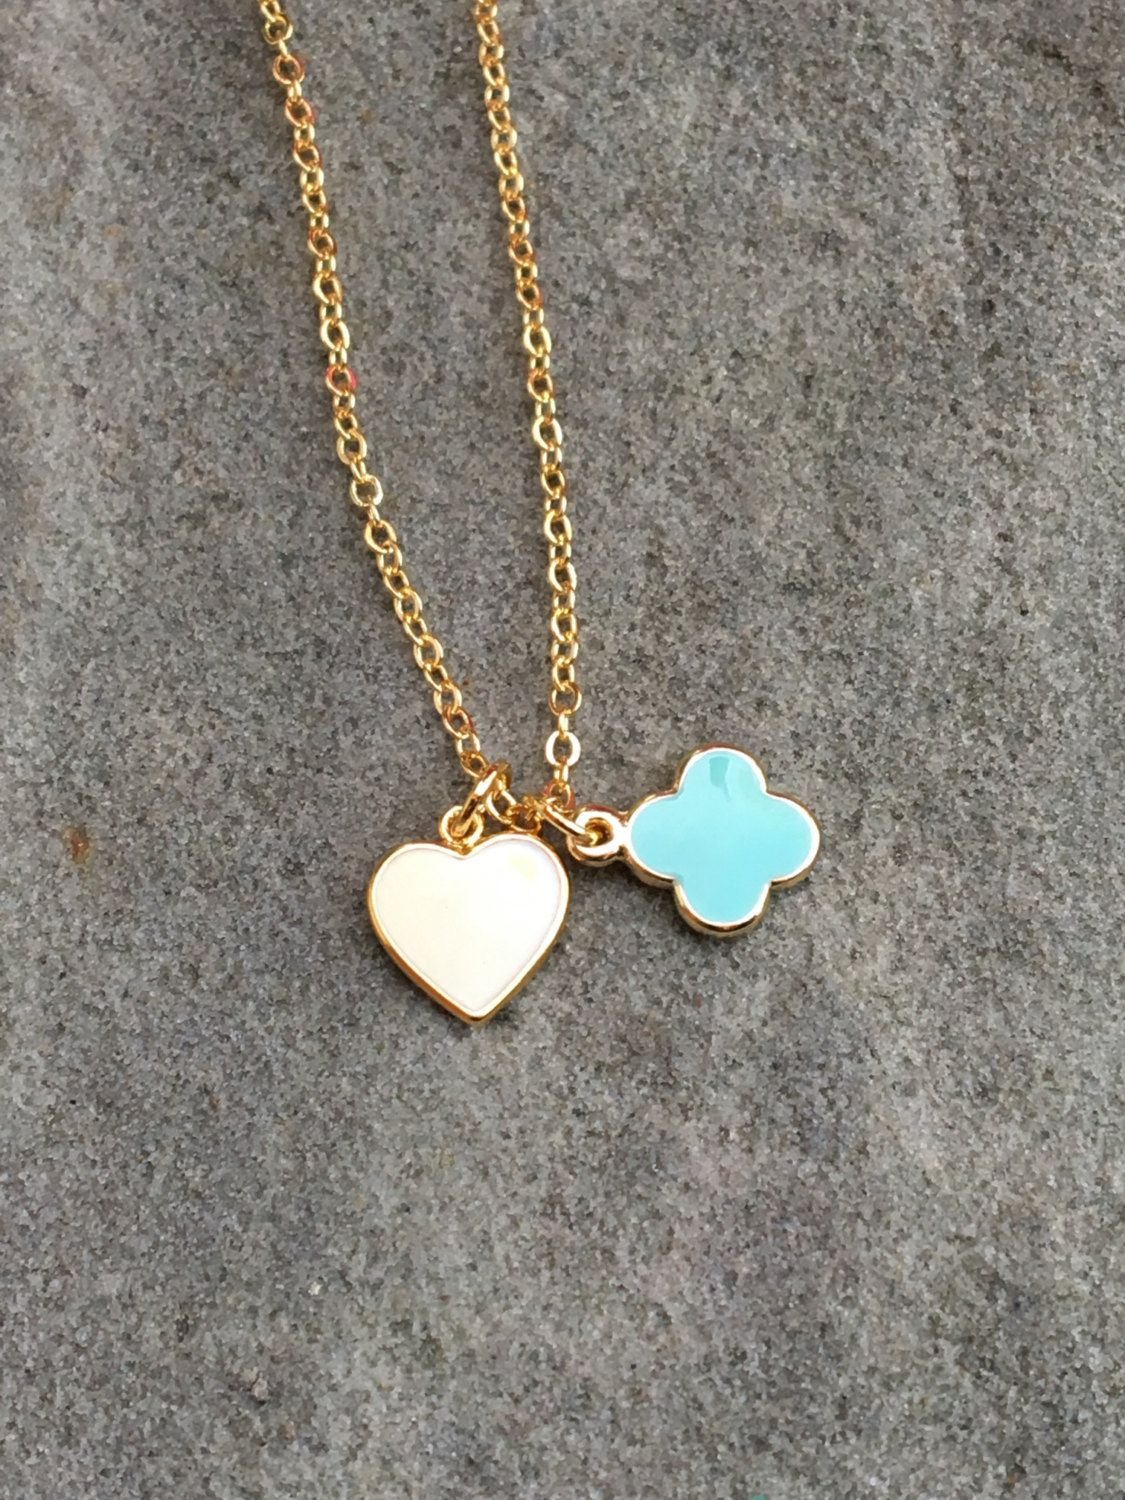 Heart and Clover Epoxy Charm necklace; Gold necklace, mini clover and heart enamel pendants; bridesmaid gift, gift for her, best friend gift by EllaHarrisonStore on Etsy